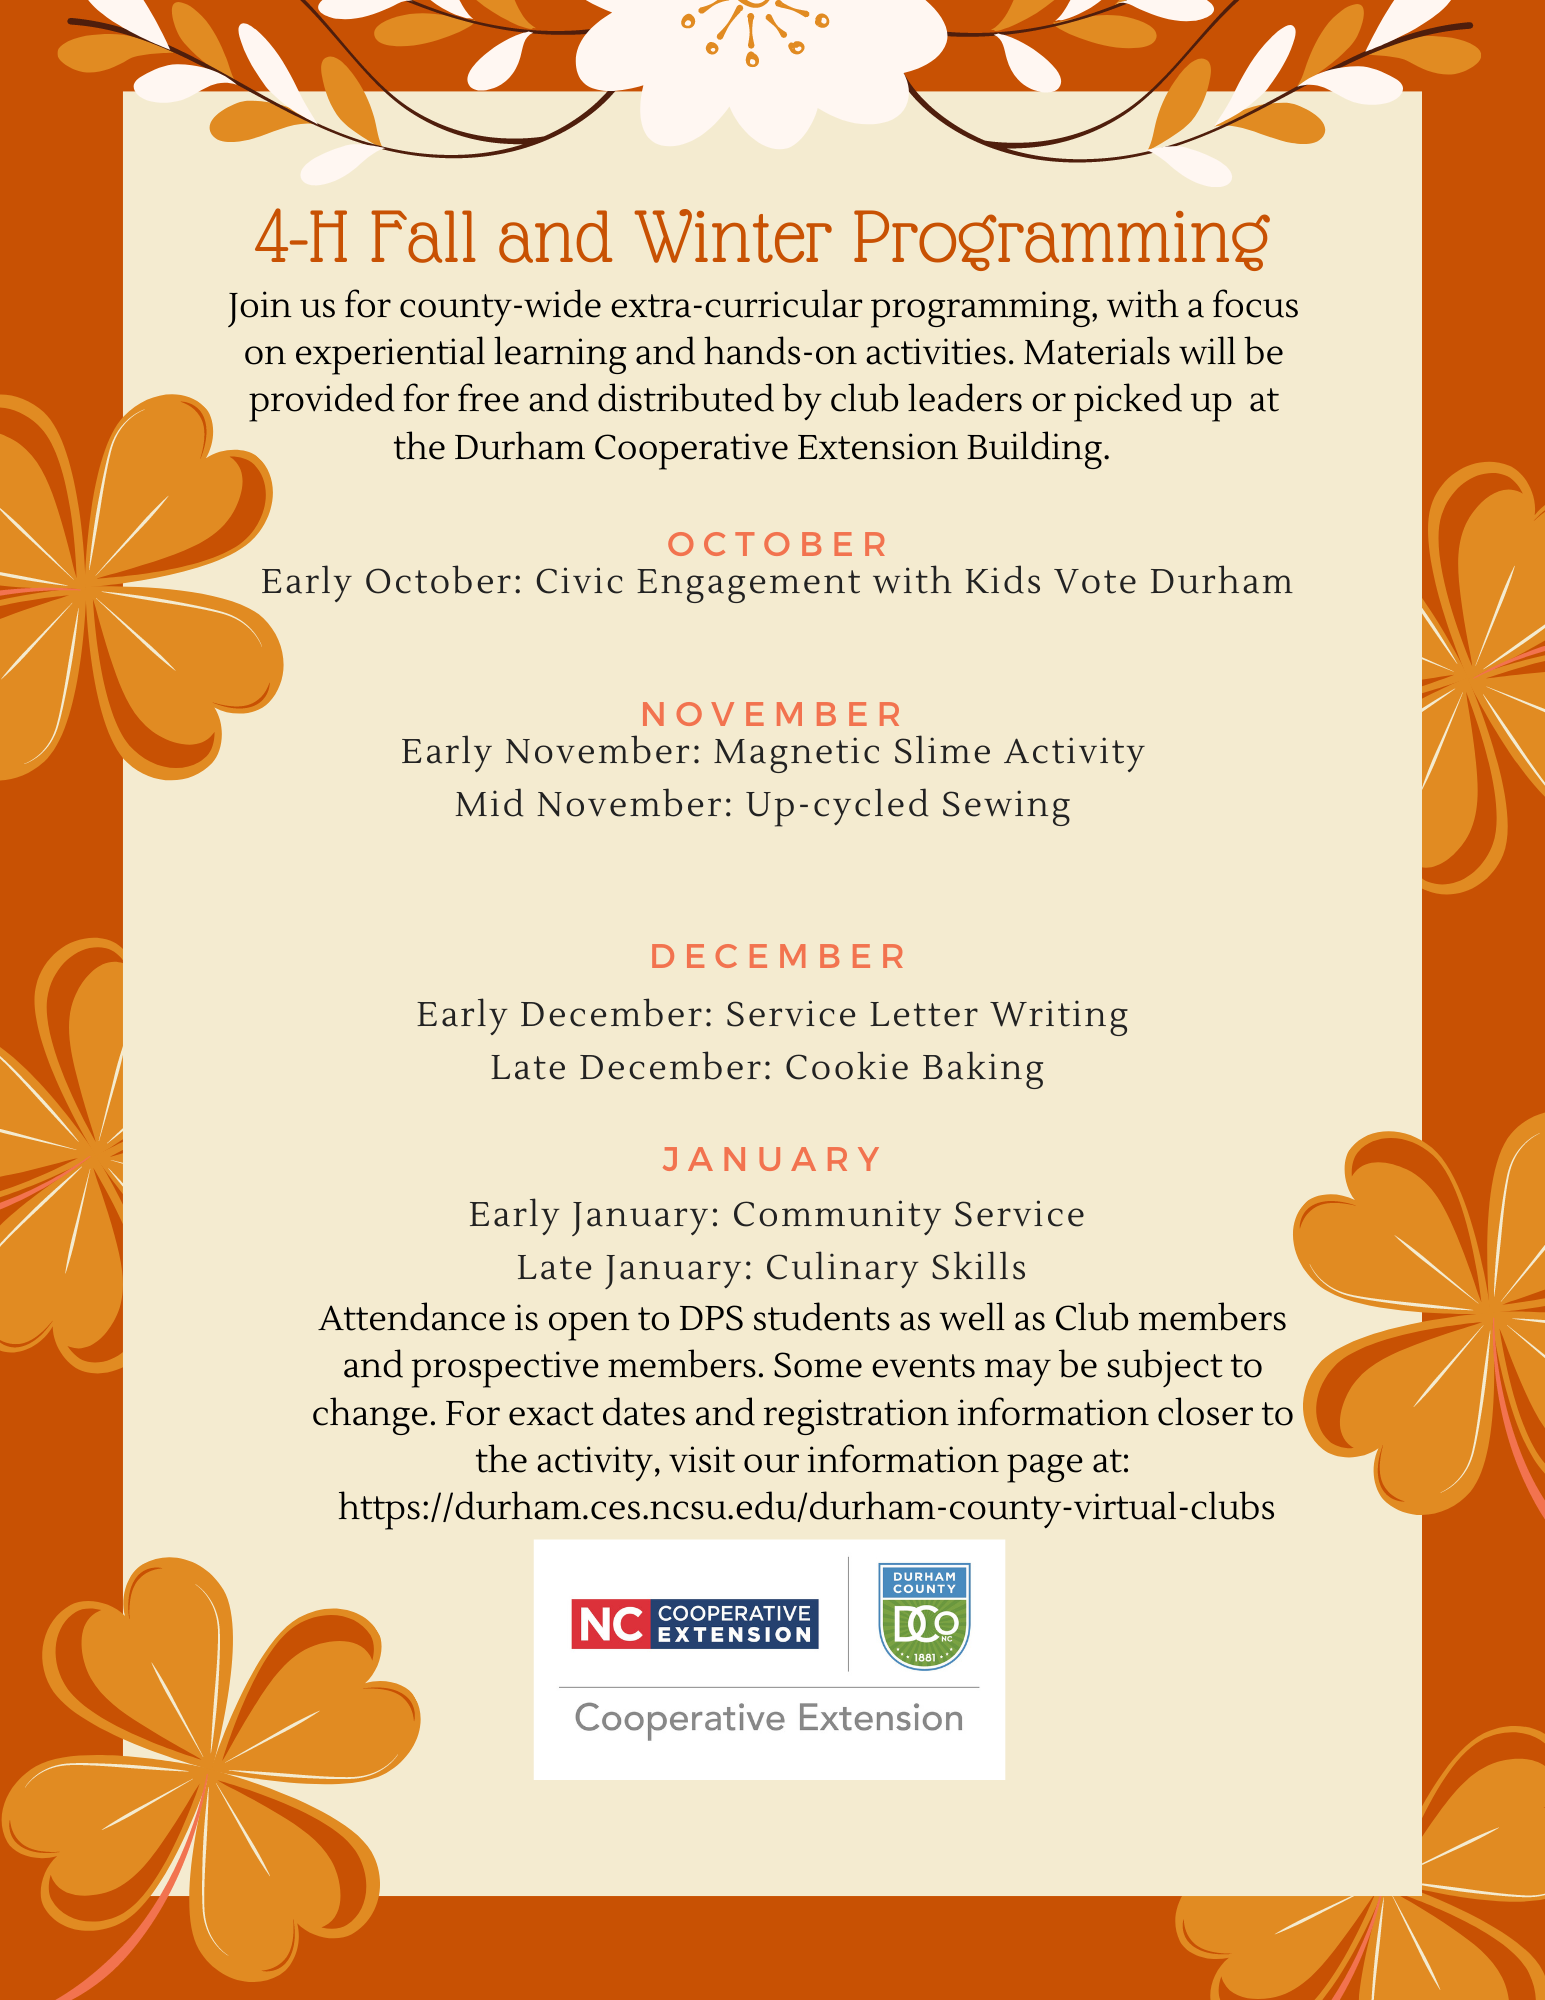 4-H Fall and Winter Programming flyer